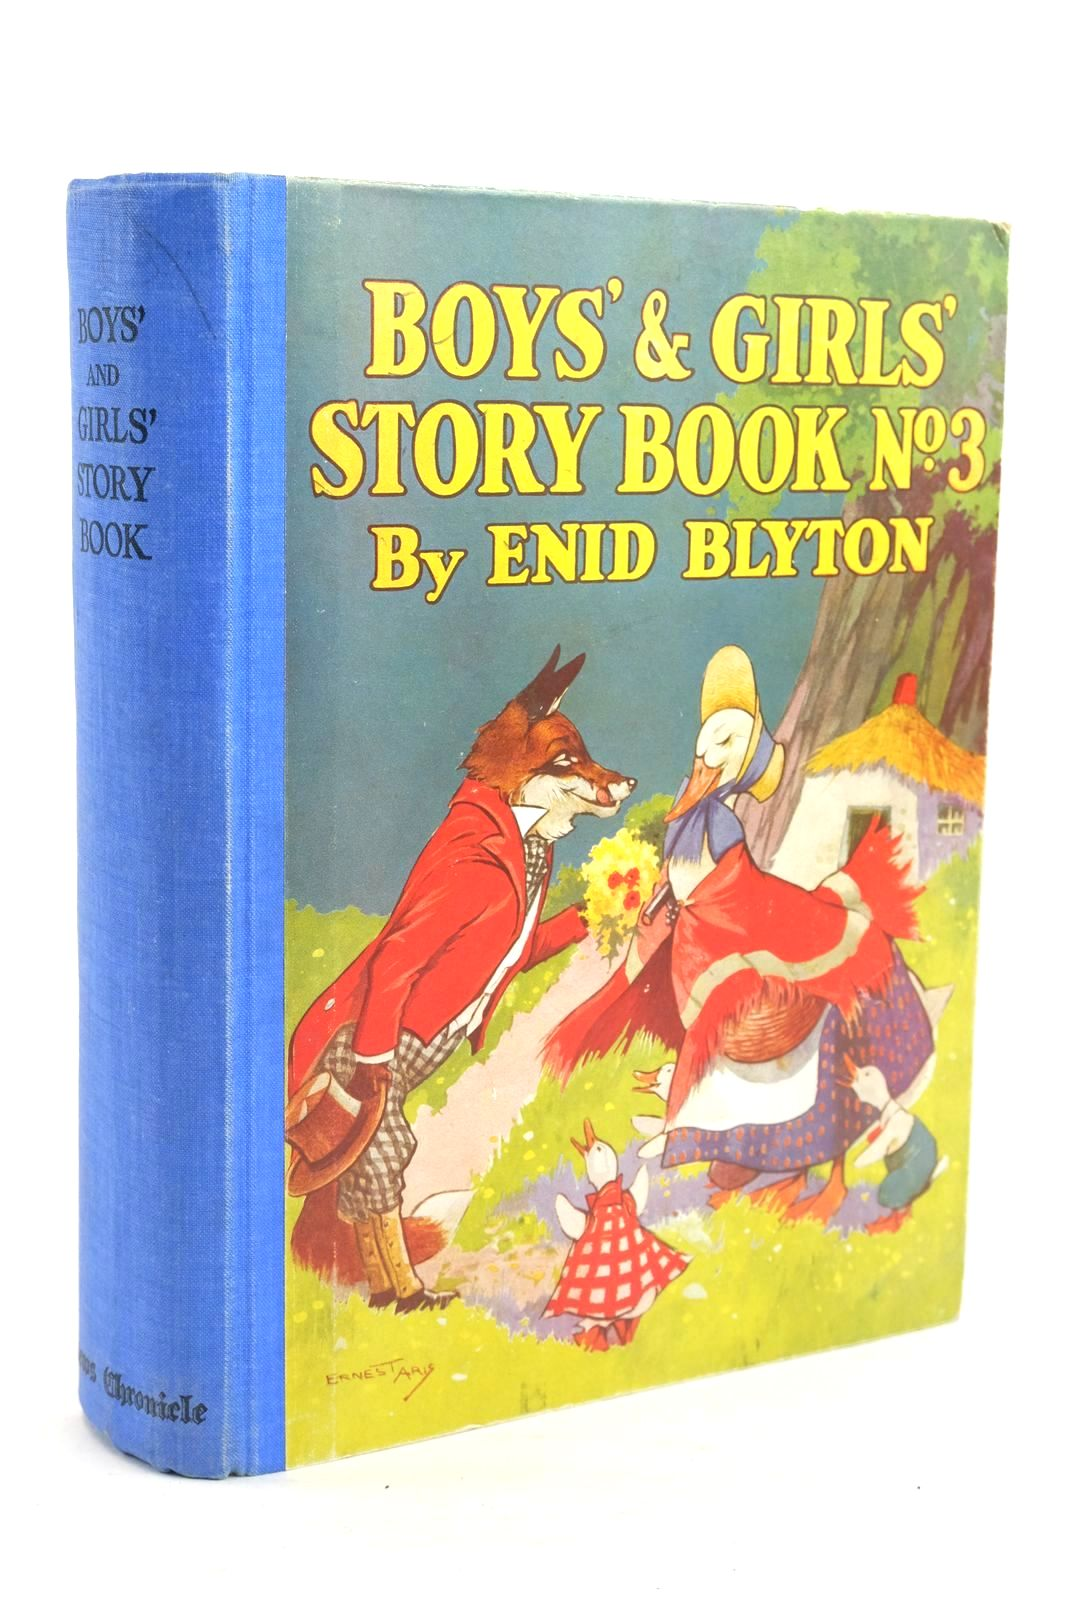 Photo of BOYS' AND GIRLS' STORY BOOK NO. 3 written by Blyton, Enid illustrated by McGavin, Hilda Aris, Ernest A. Venus, Sylvia published by News Chronicle (STOCK CODE: 1320057)  for sale by Stella & Rose's Books